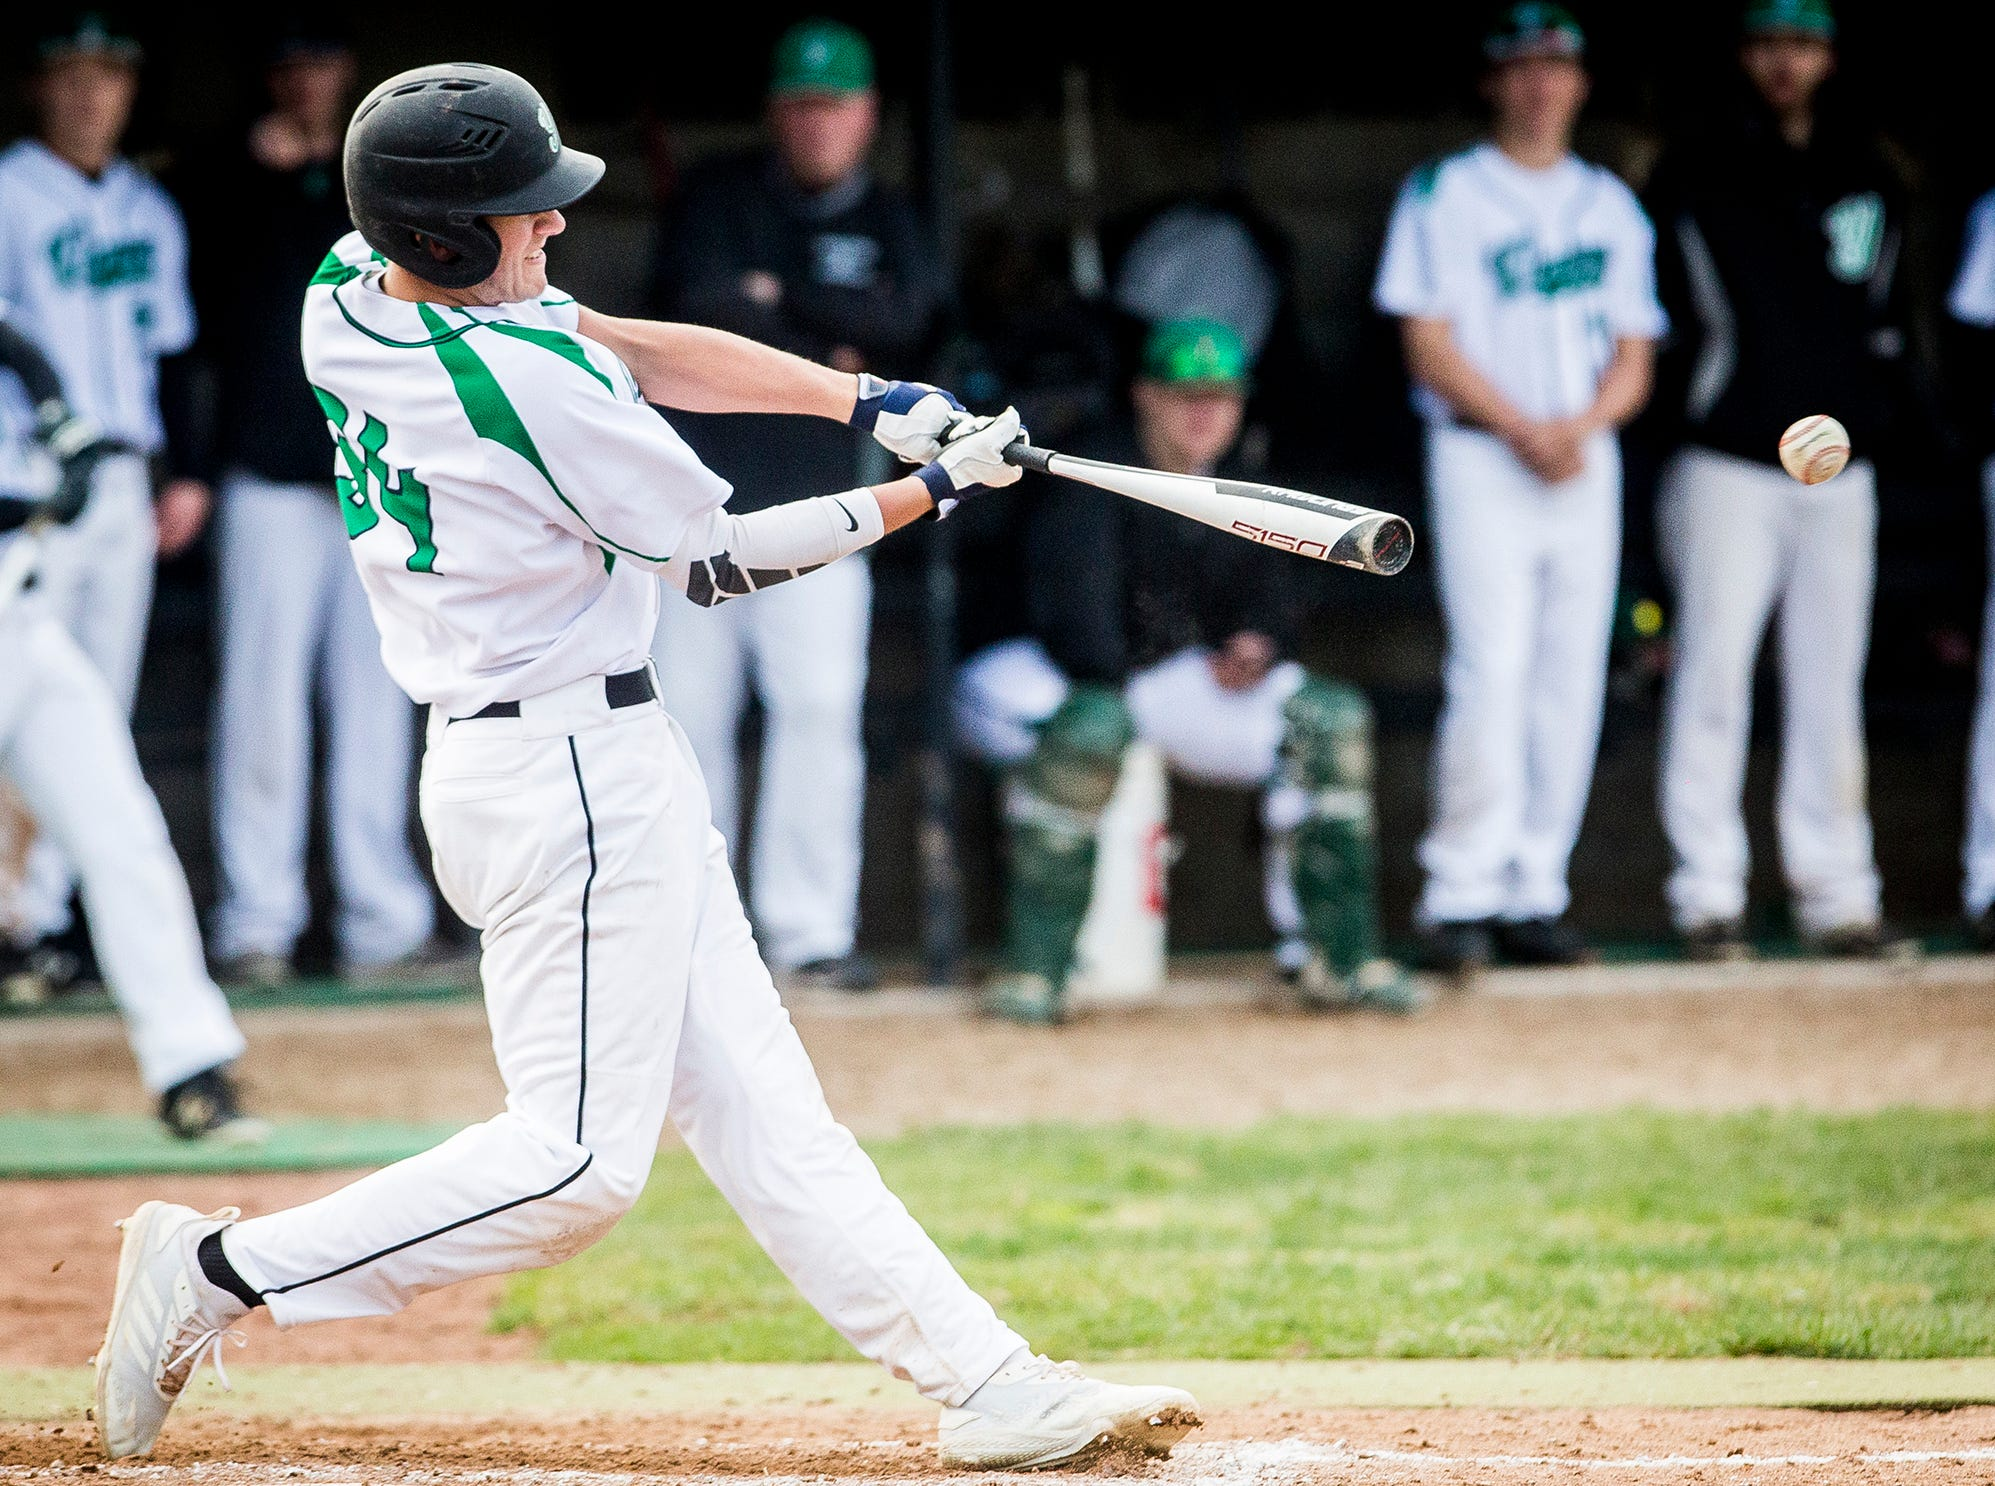 Yorktown's Dominic Cantanzarite hits a pitch from Monroe Central during their game at Yorktown High School Wednesday, April 10, 2019.